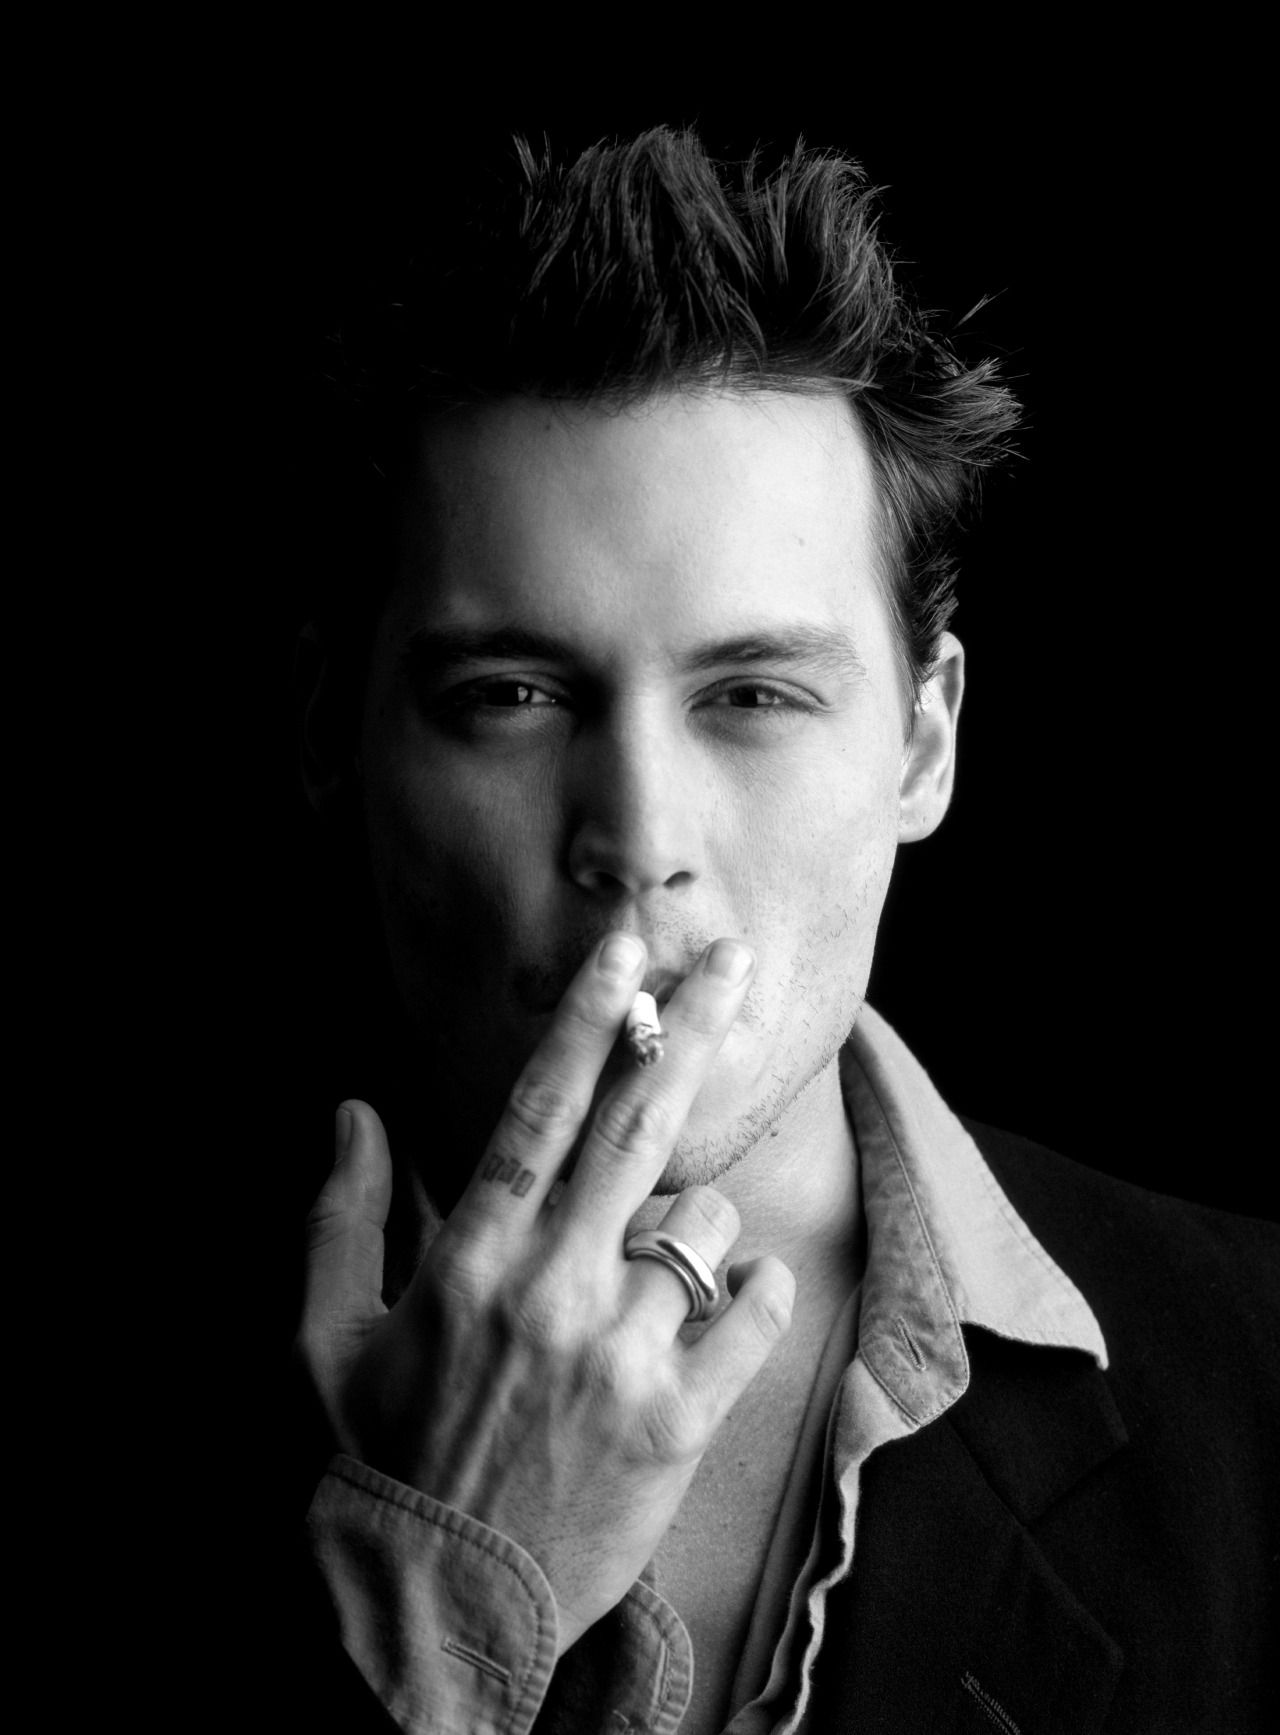 Black white young johnny depp celebrity photography celebrity portraits portrait photography